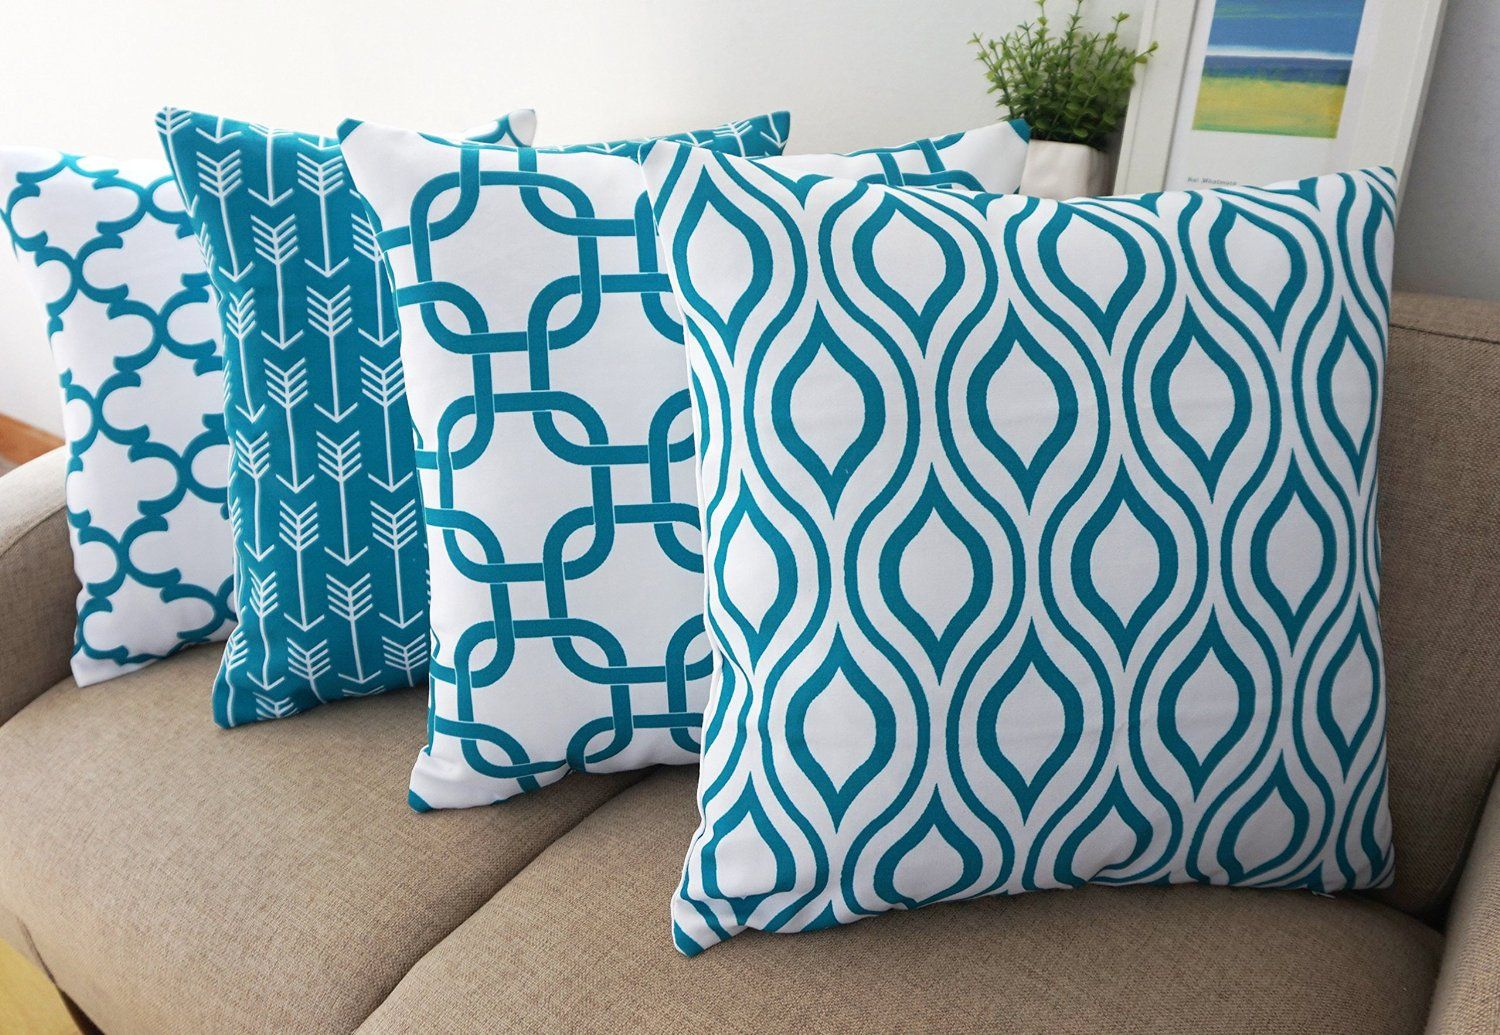 Amazon howarmer canvas cotton throw pillows cover for couch set